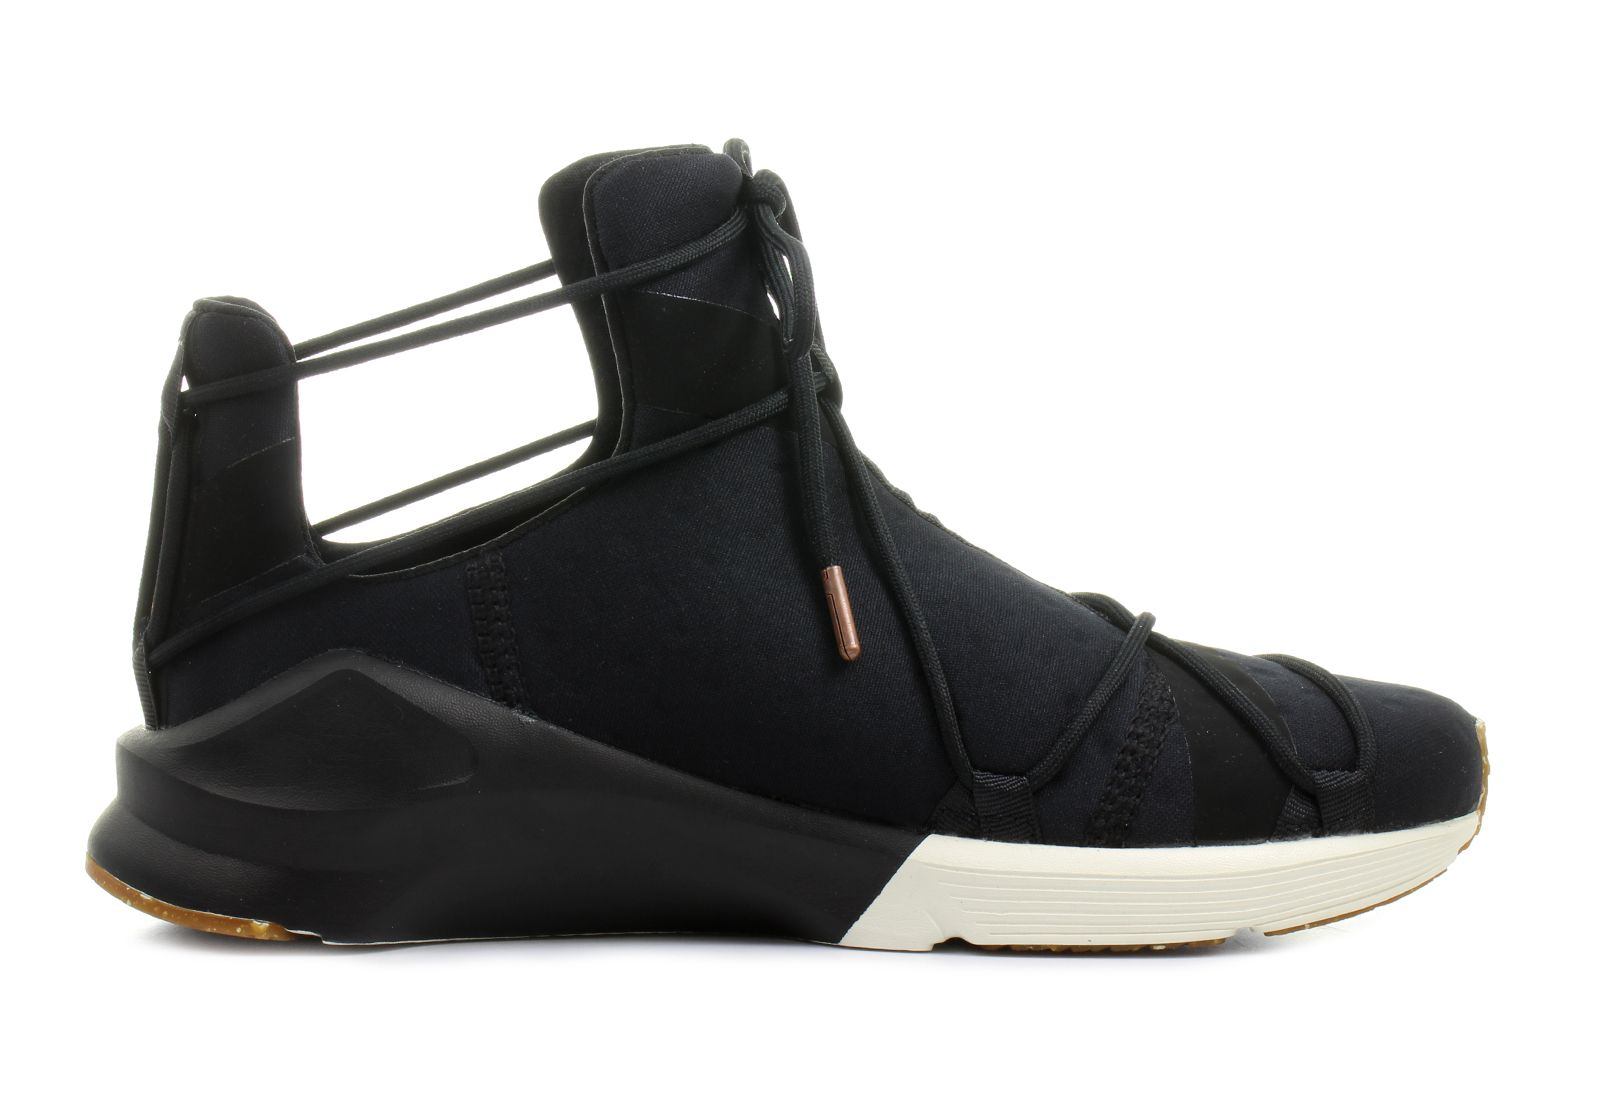 Puma Shoes - Fierce Rope Vr Wn s - 19013602-blk - Online shop for ... bfe122980